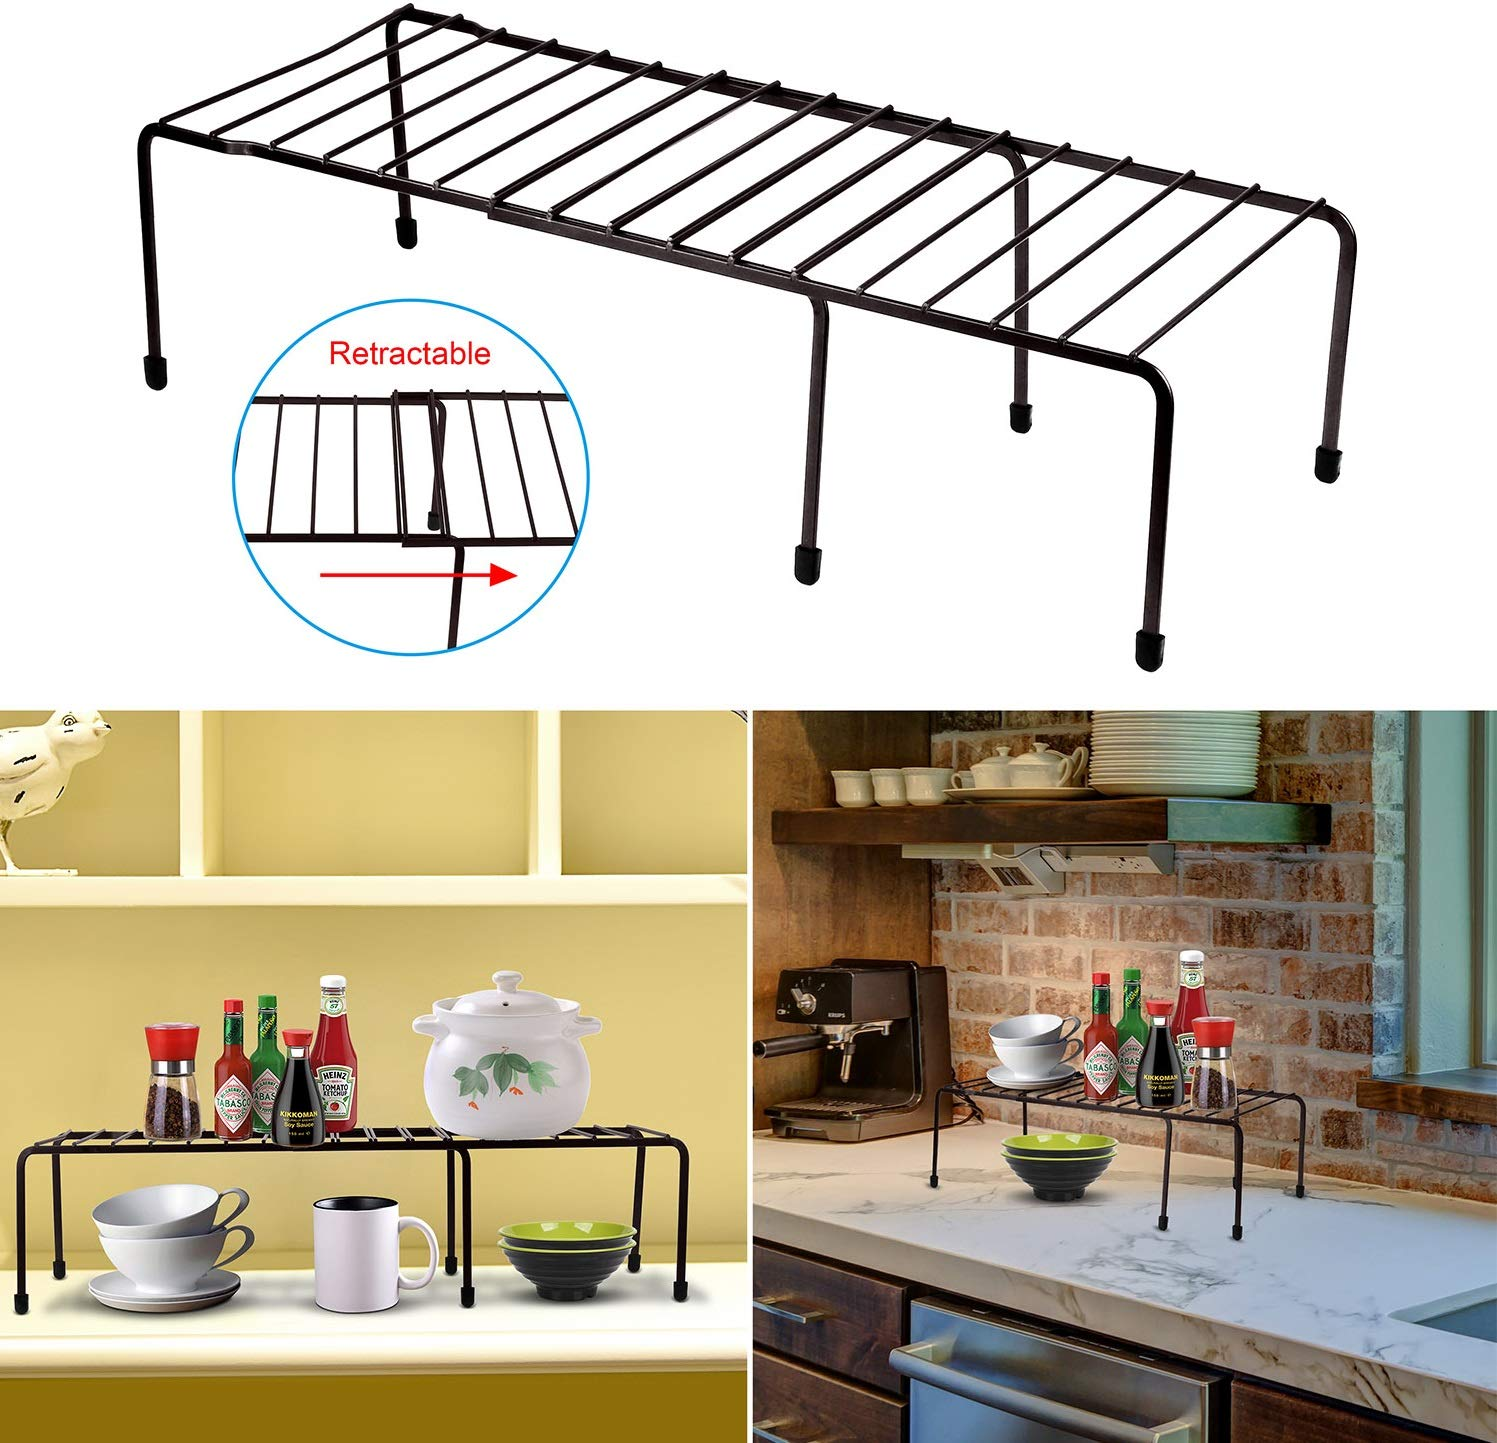 GPCT Expandable Kitchen Counter & Cabinet Shelf Organizer. Adjustable Pantry Countertop Storage Shelves- for Dishes/Dinnerware/Cookware/Spices/Canned Food/Tea Tins/Laundry. 33 lbs Capacity- Coffee